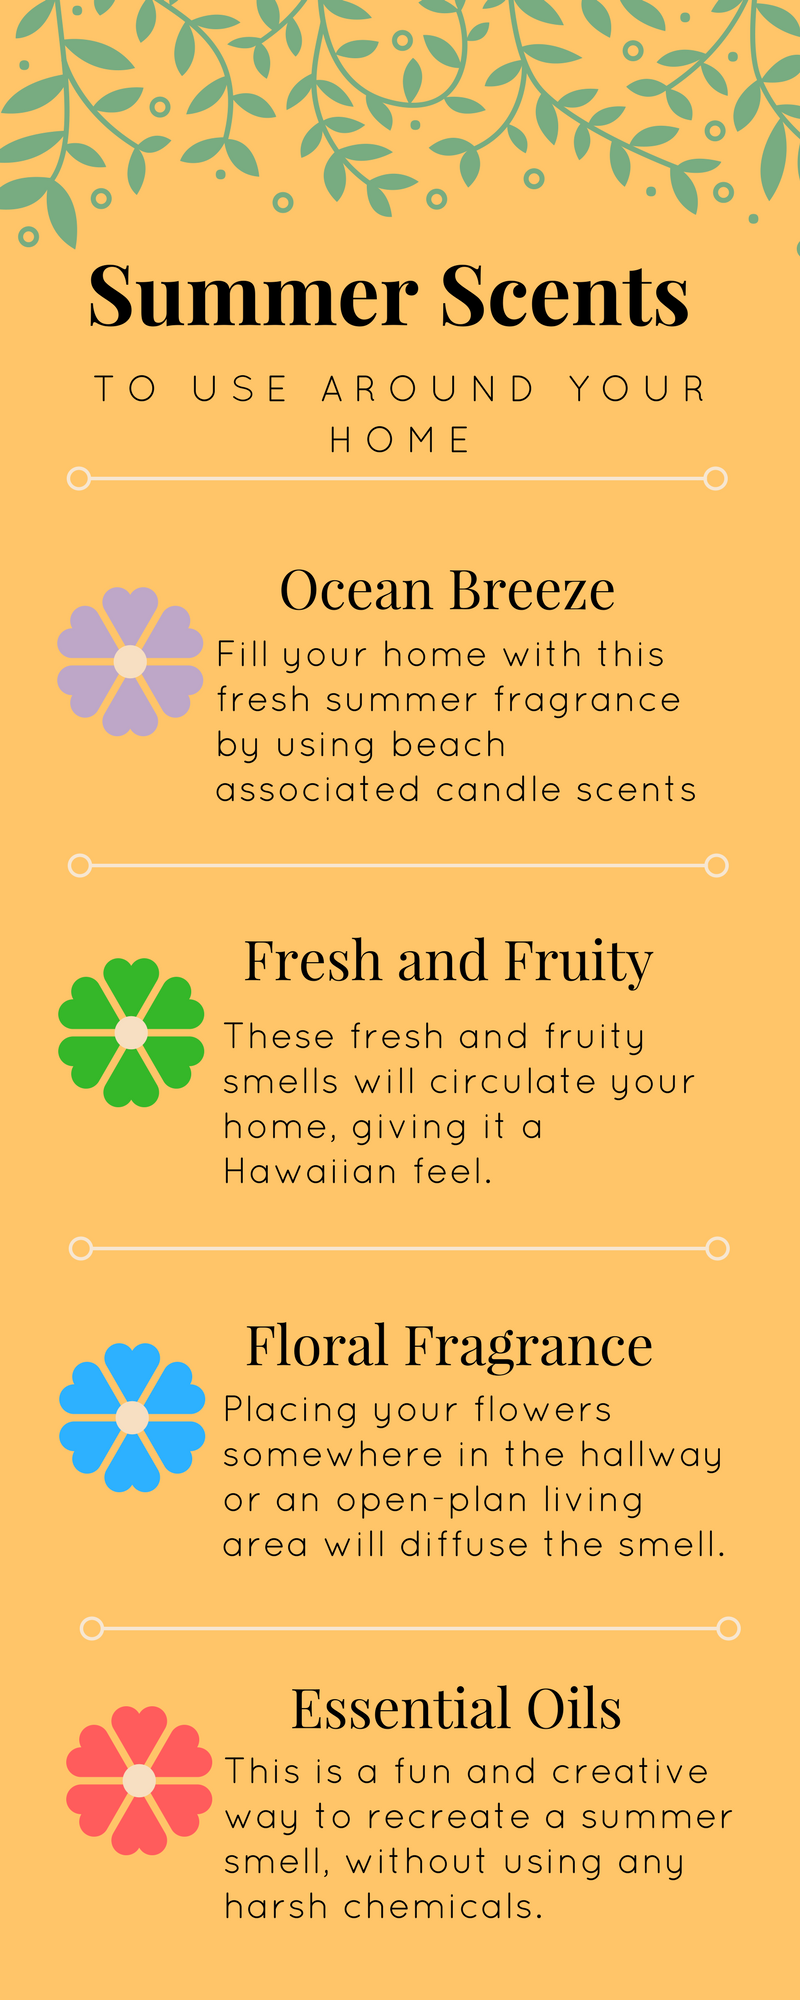 Summer Scents to use around your home